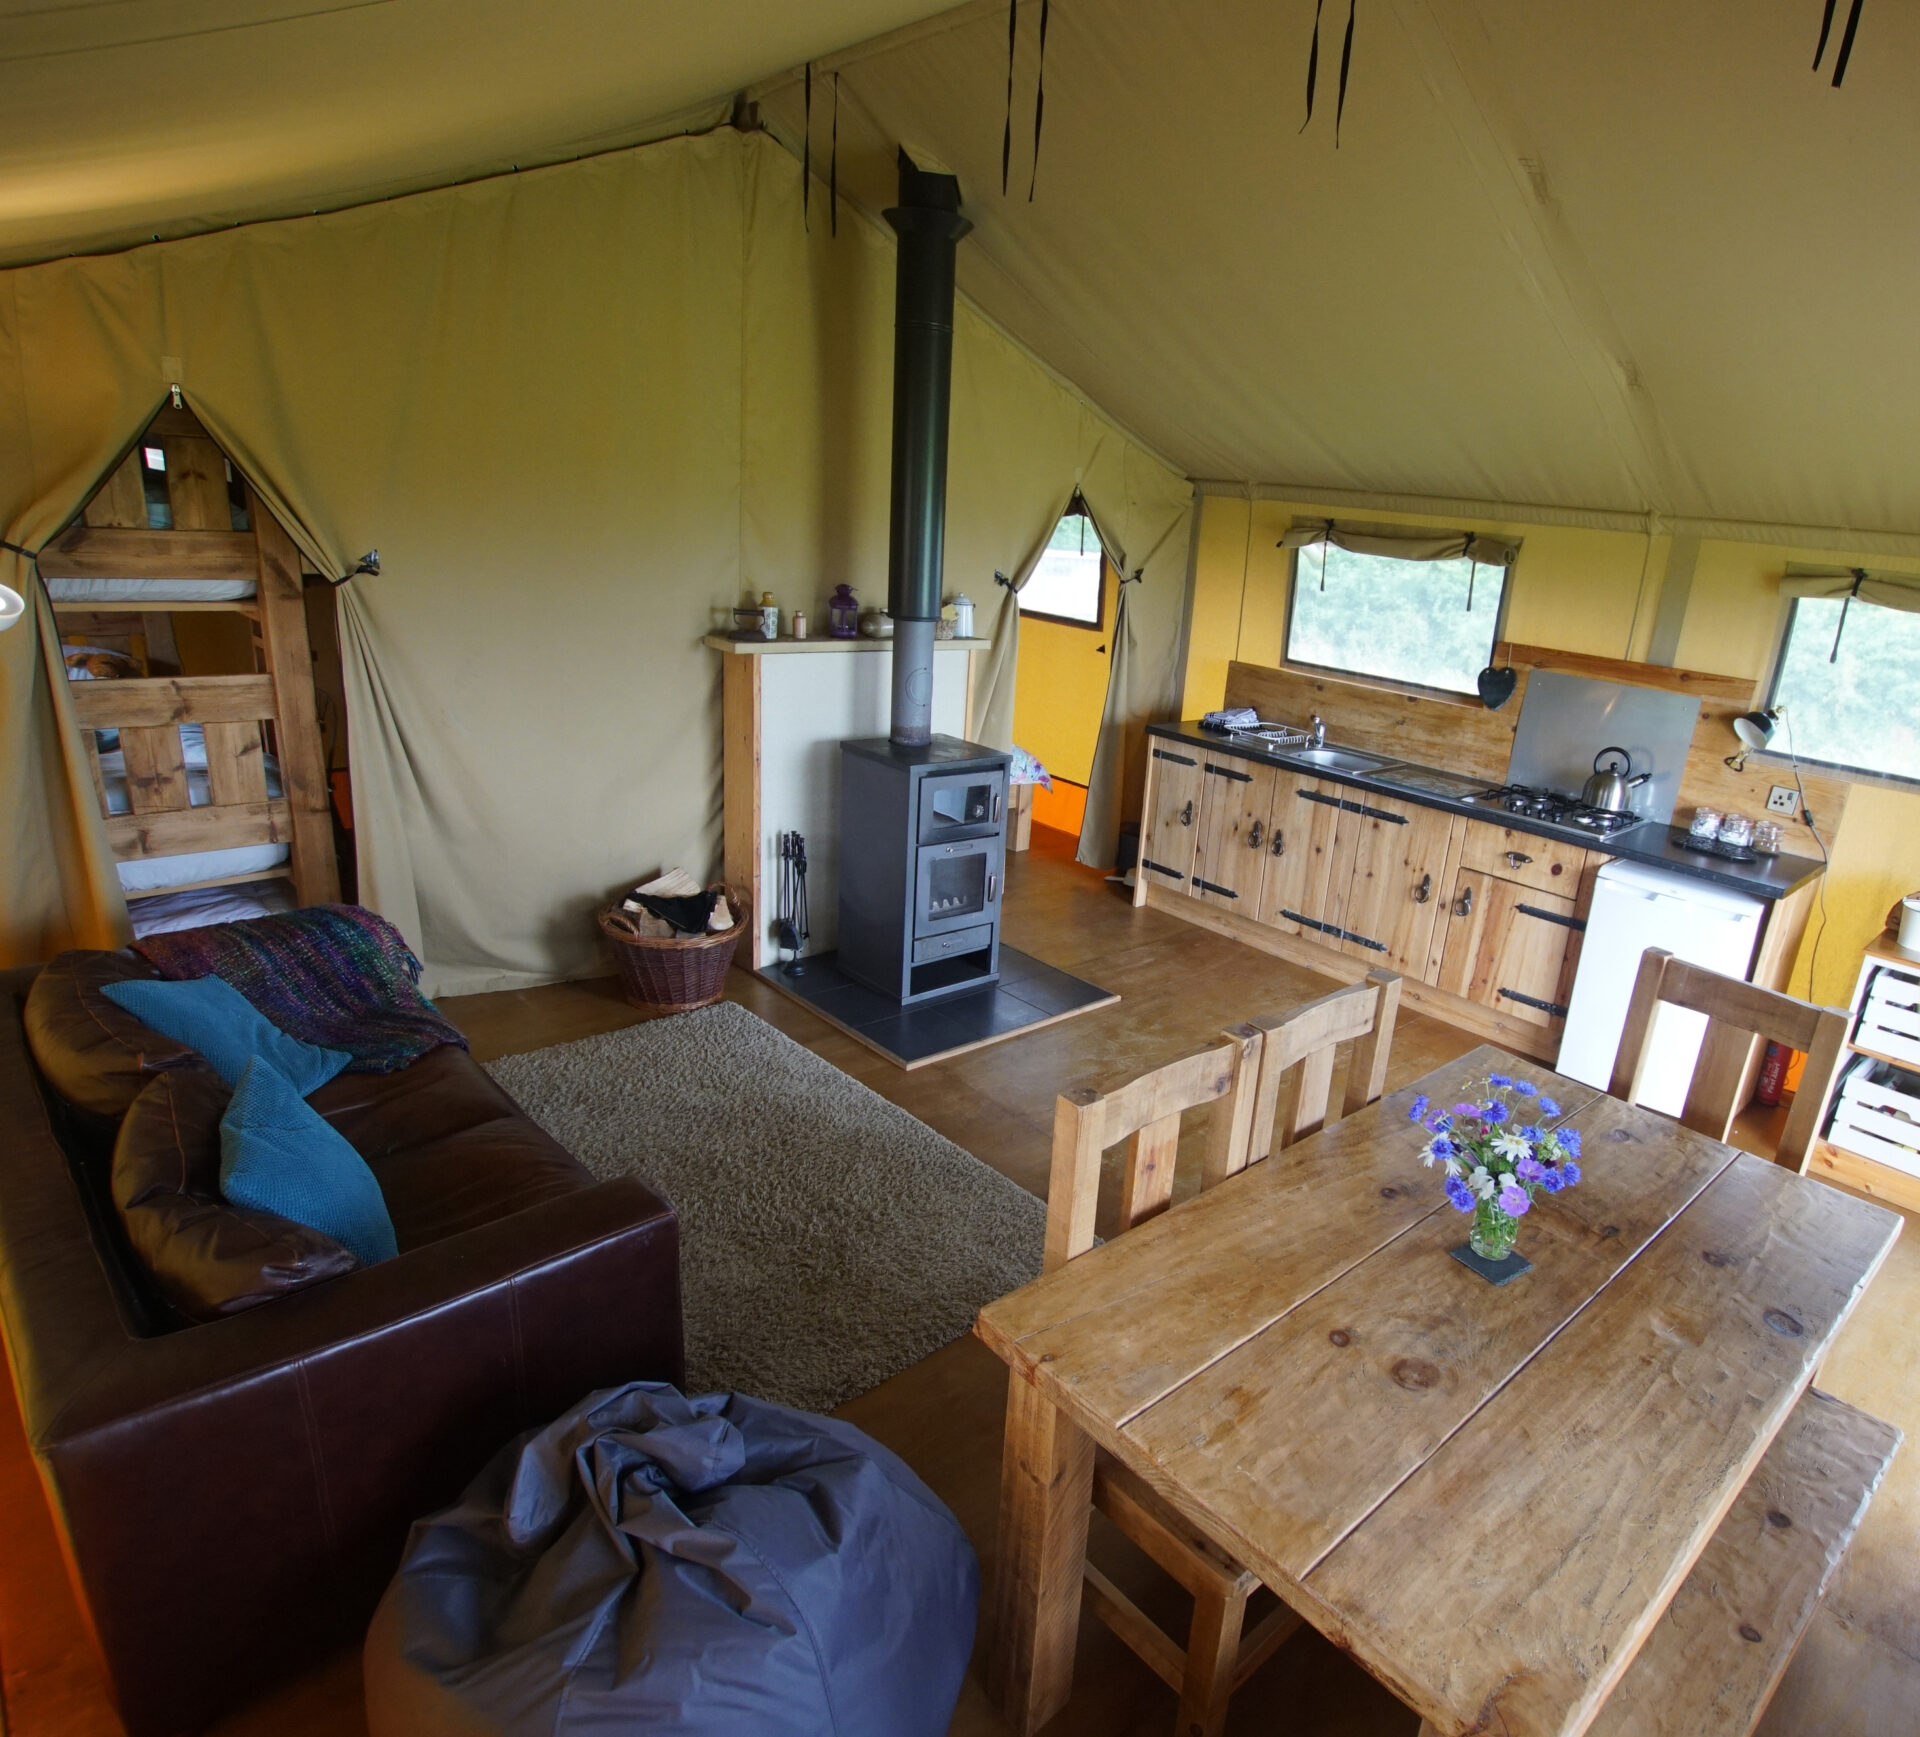 Kitchen and dining area at Village Farm Getaway, holidays glamping and luxury camping in East Midlands and Leicestershire